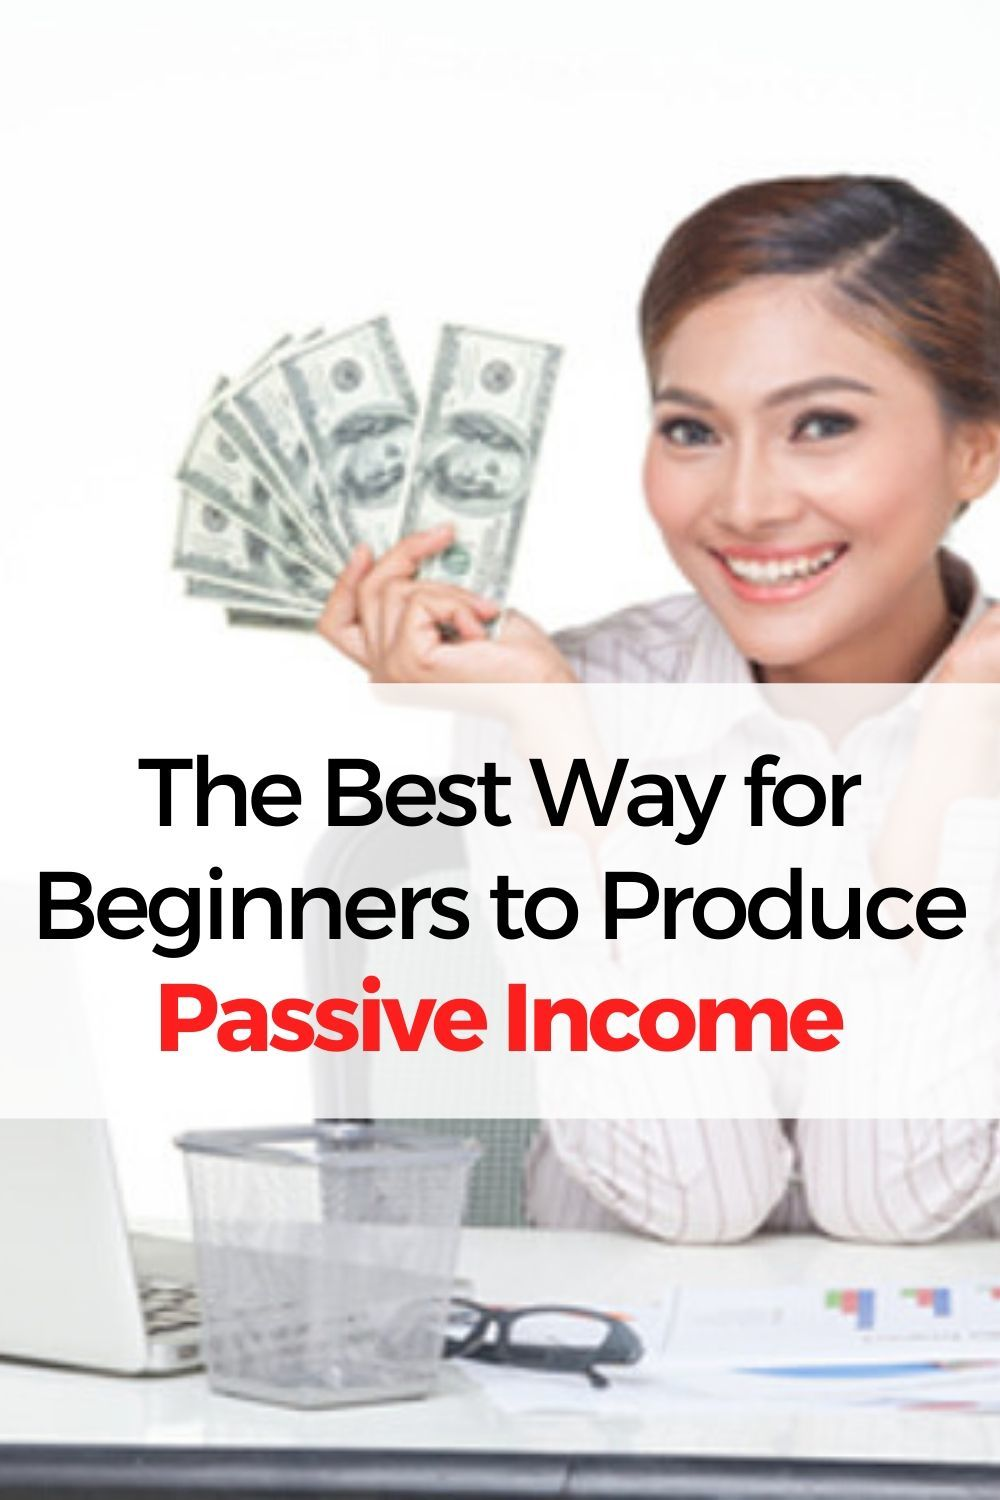 The Best Way for Beginners to Produce Passive Income